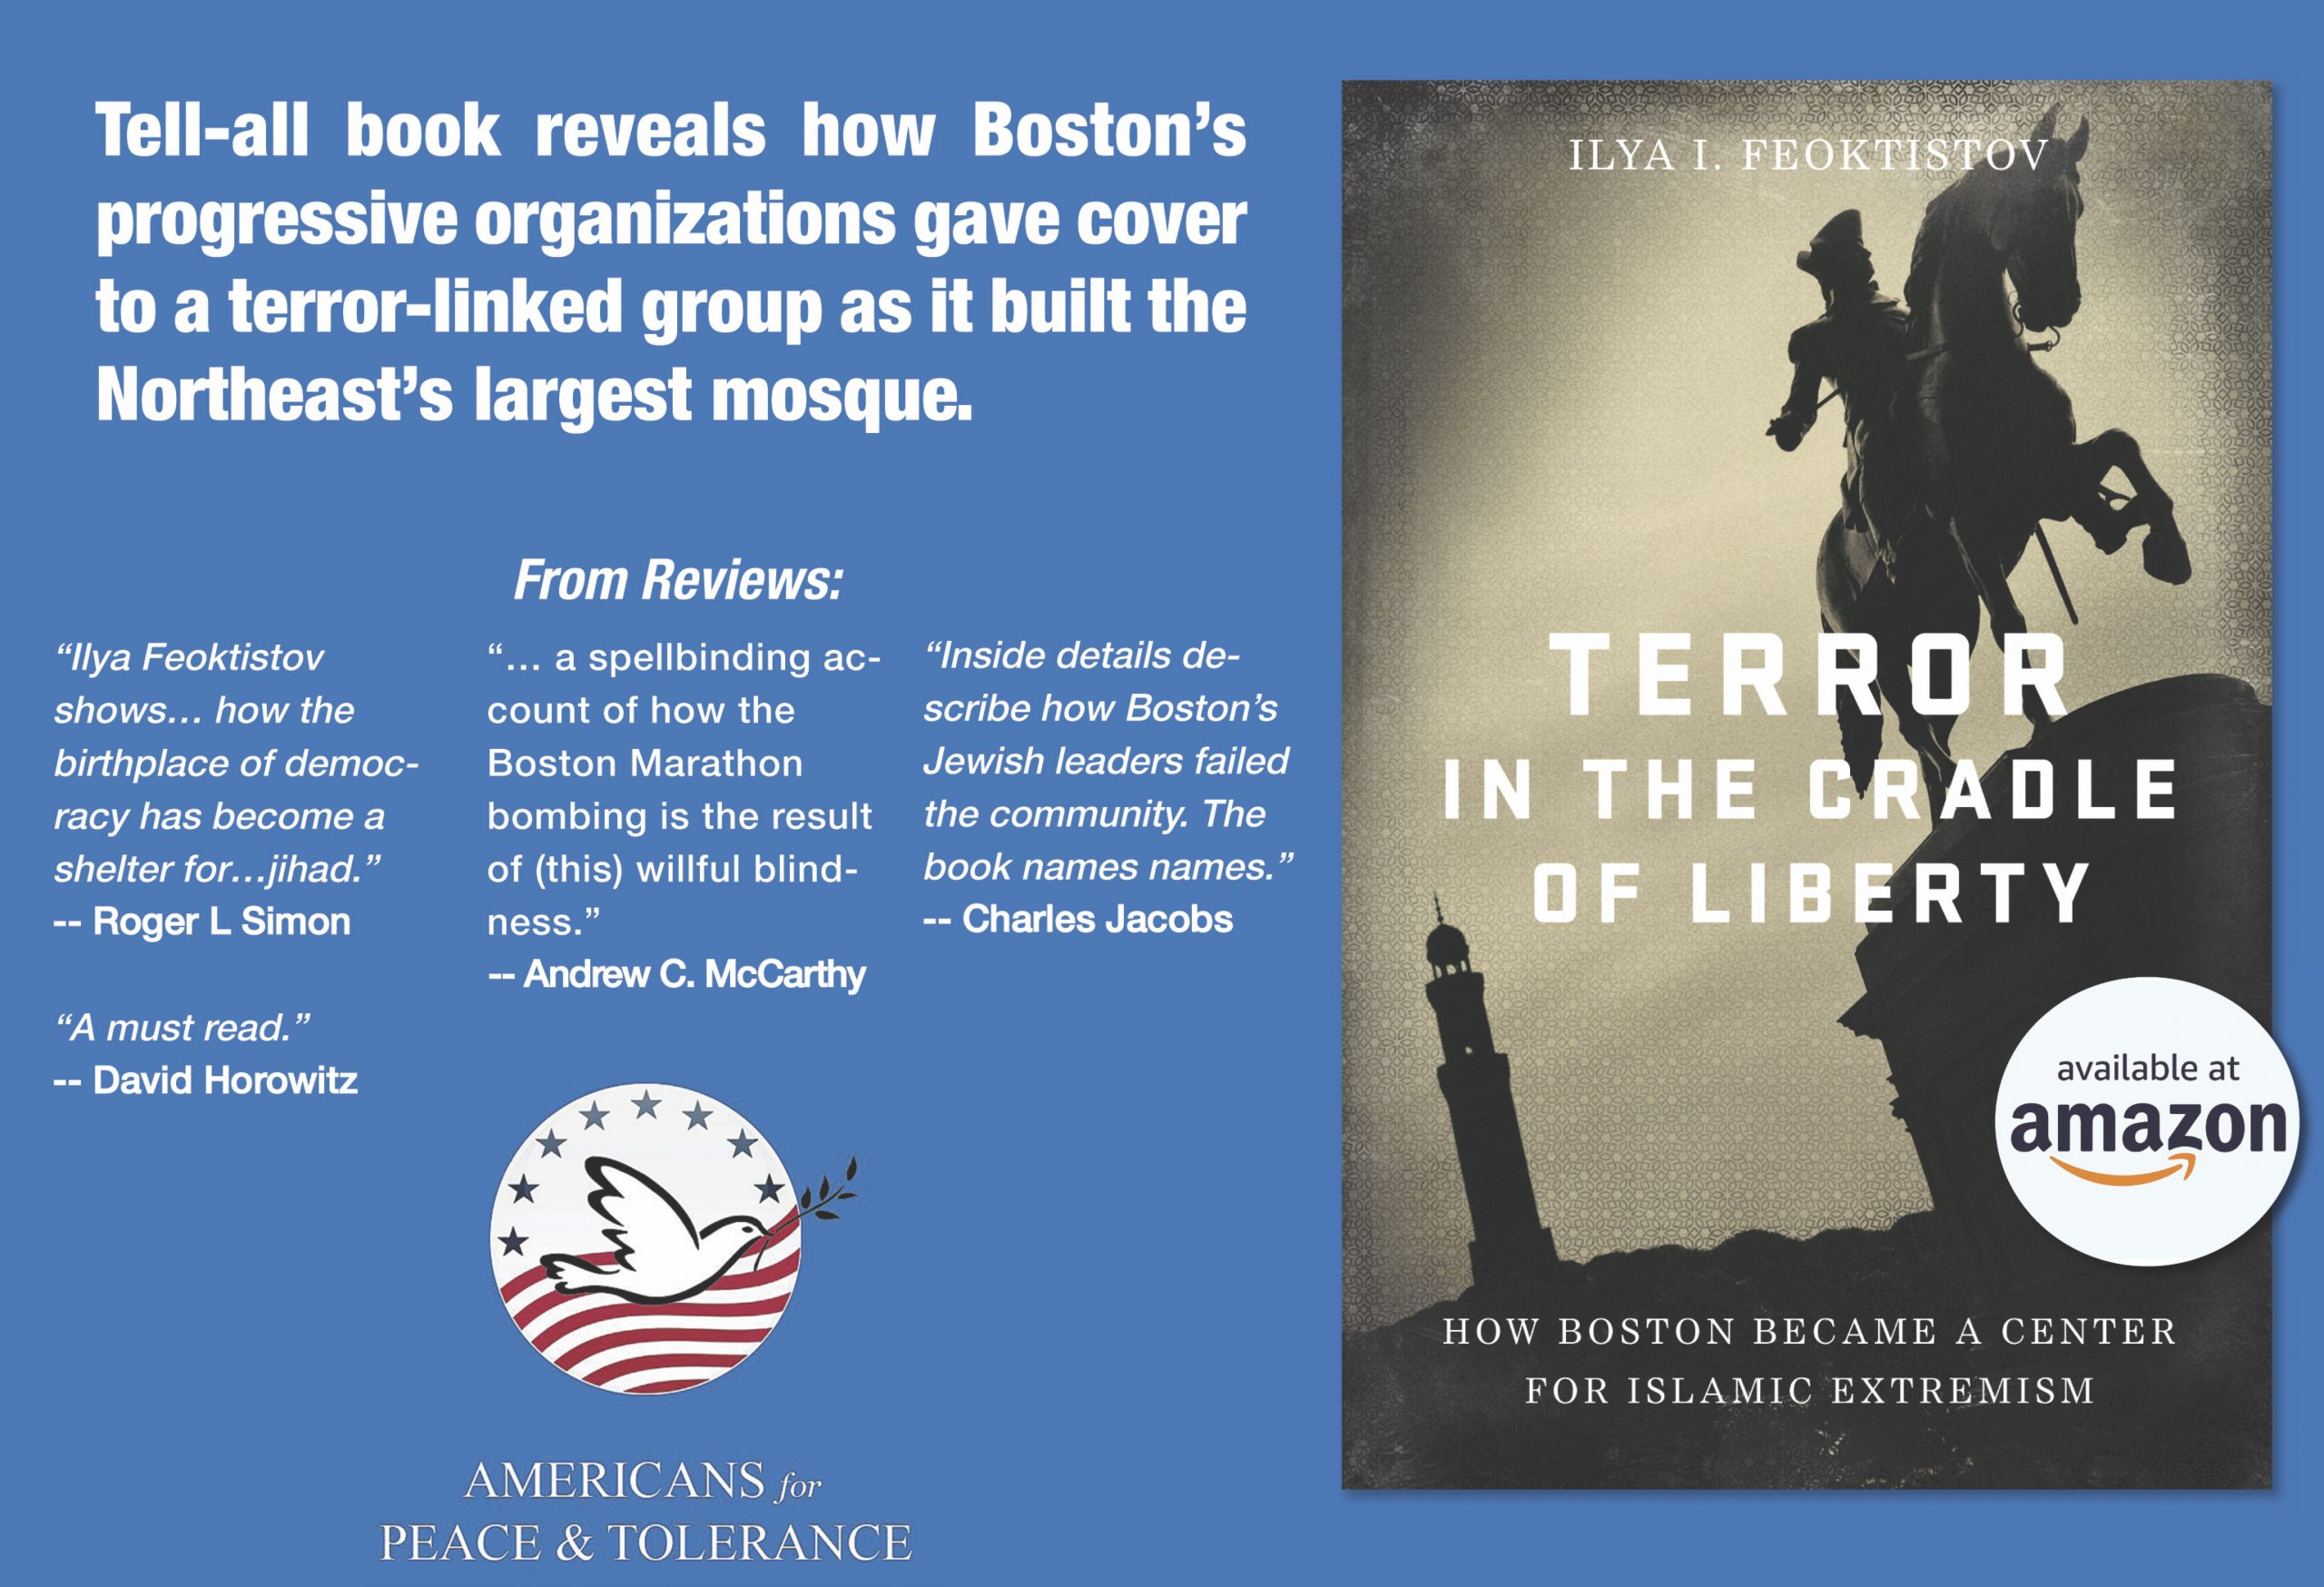 With Tsarnaev's Death Sentence Overturned, Book Reminds How Boston's Jewish Leaders Embraced His Radical Mosque